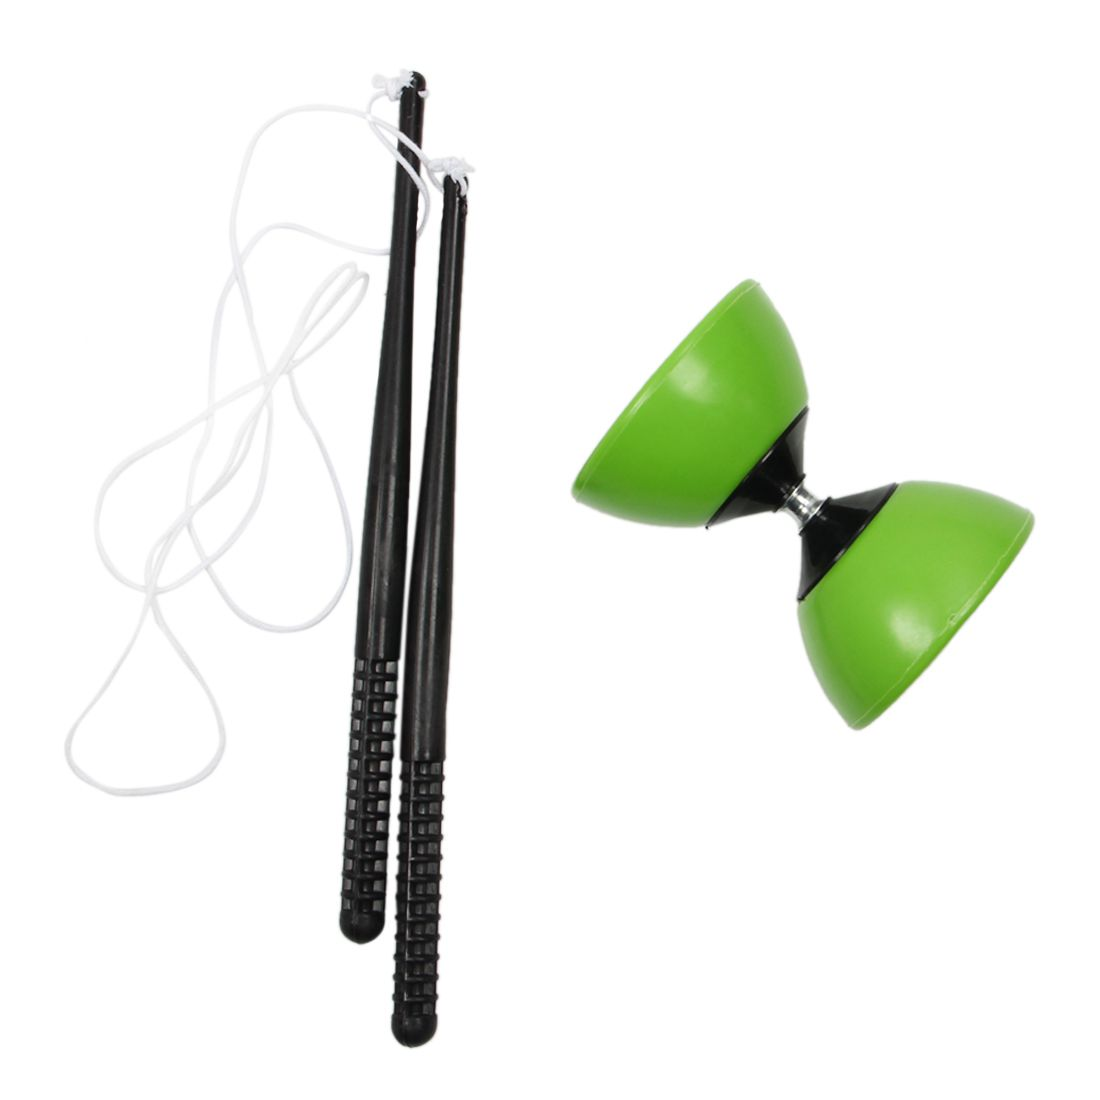 FBIL- Plastic Bowl Diabolo Juggling Spinning Chinese Yo Yo Classic Toy with Hand Sticks Green